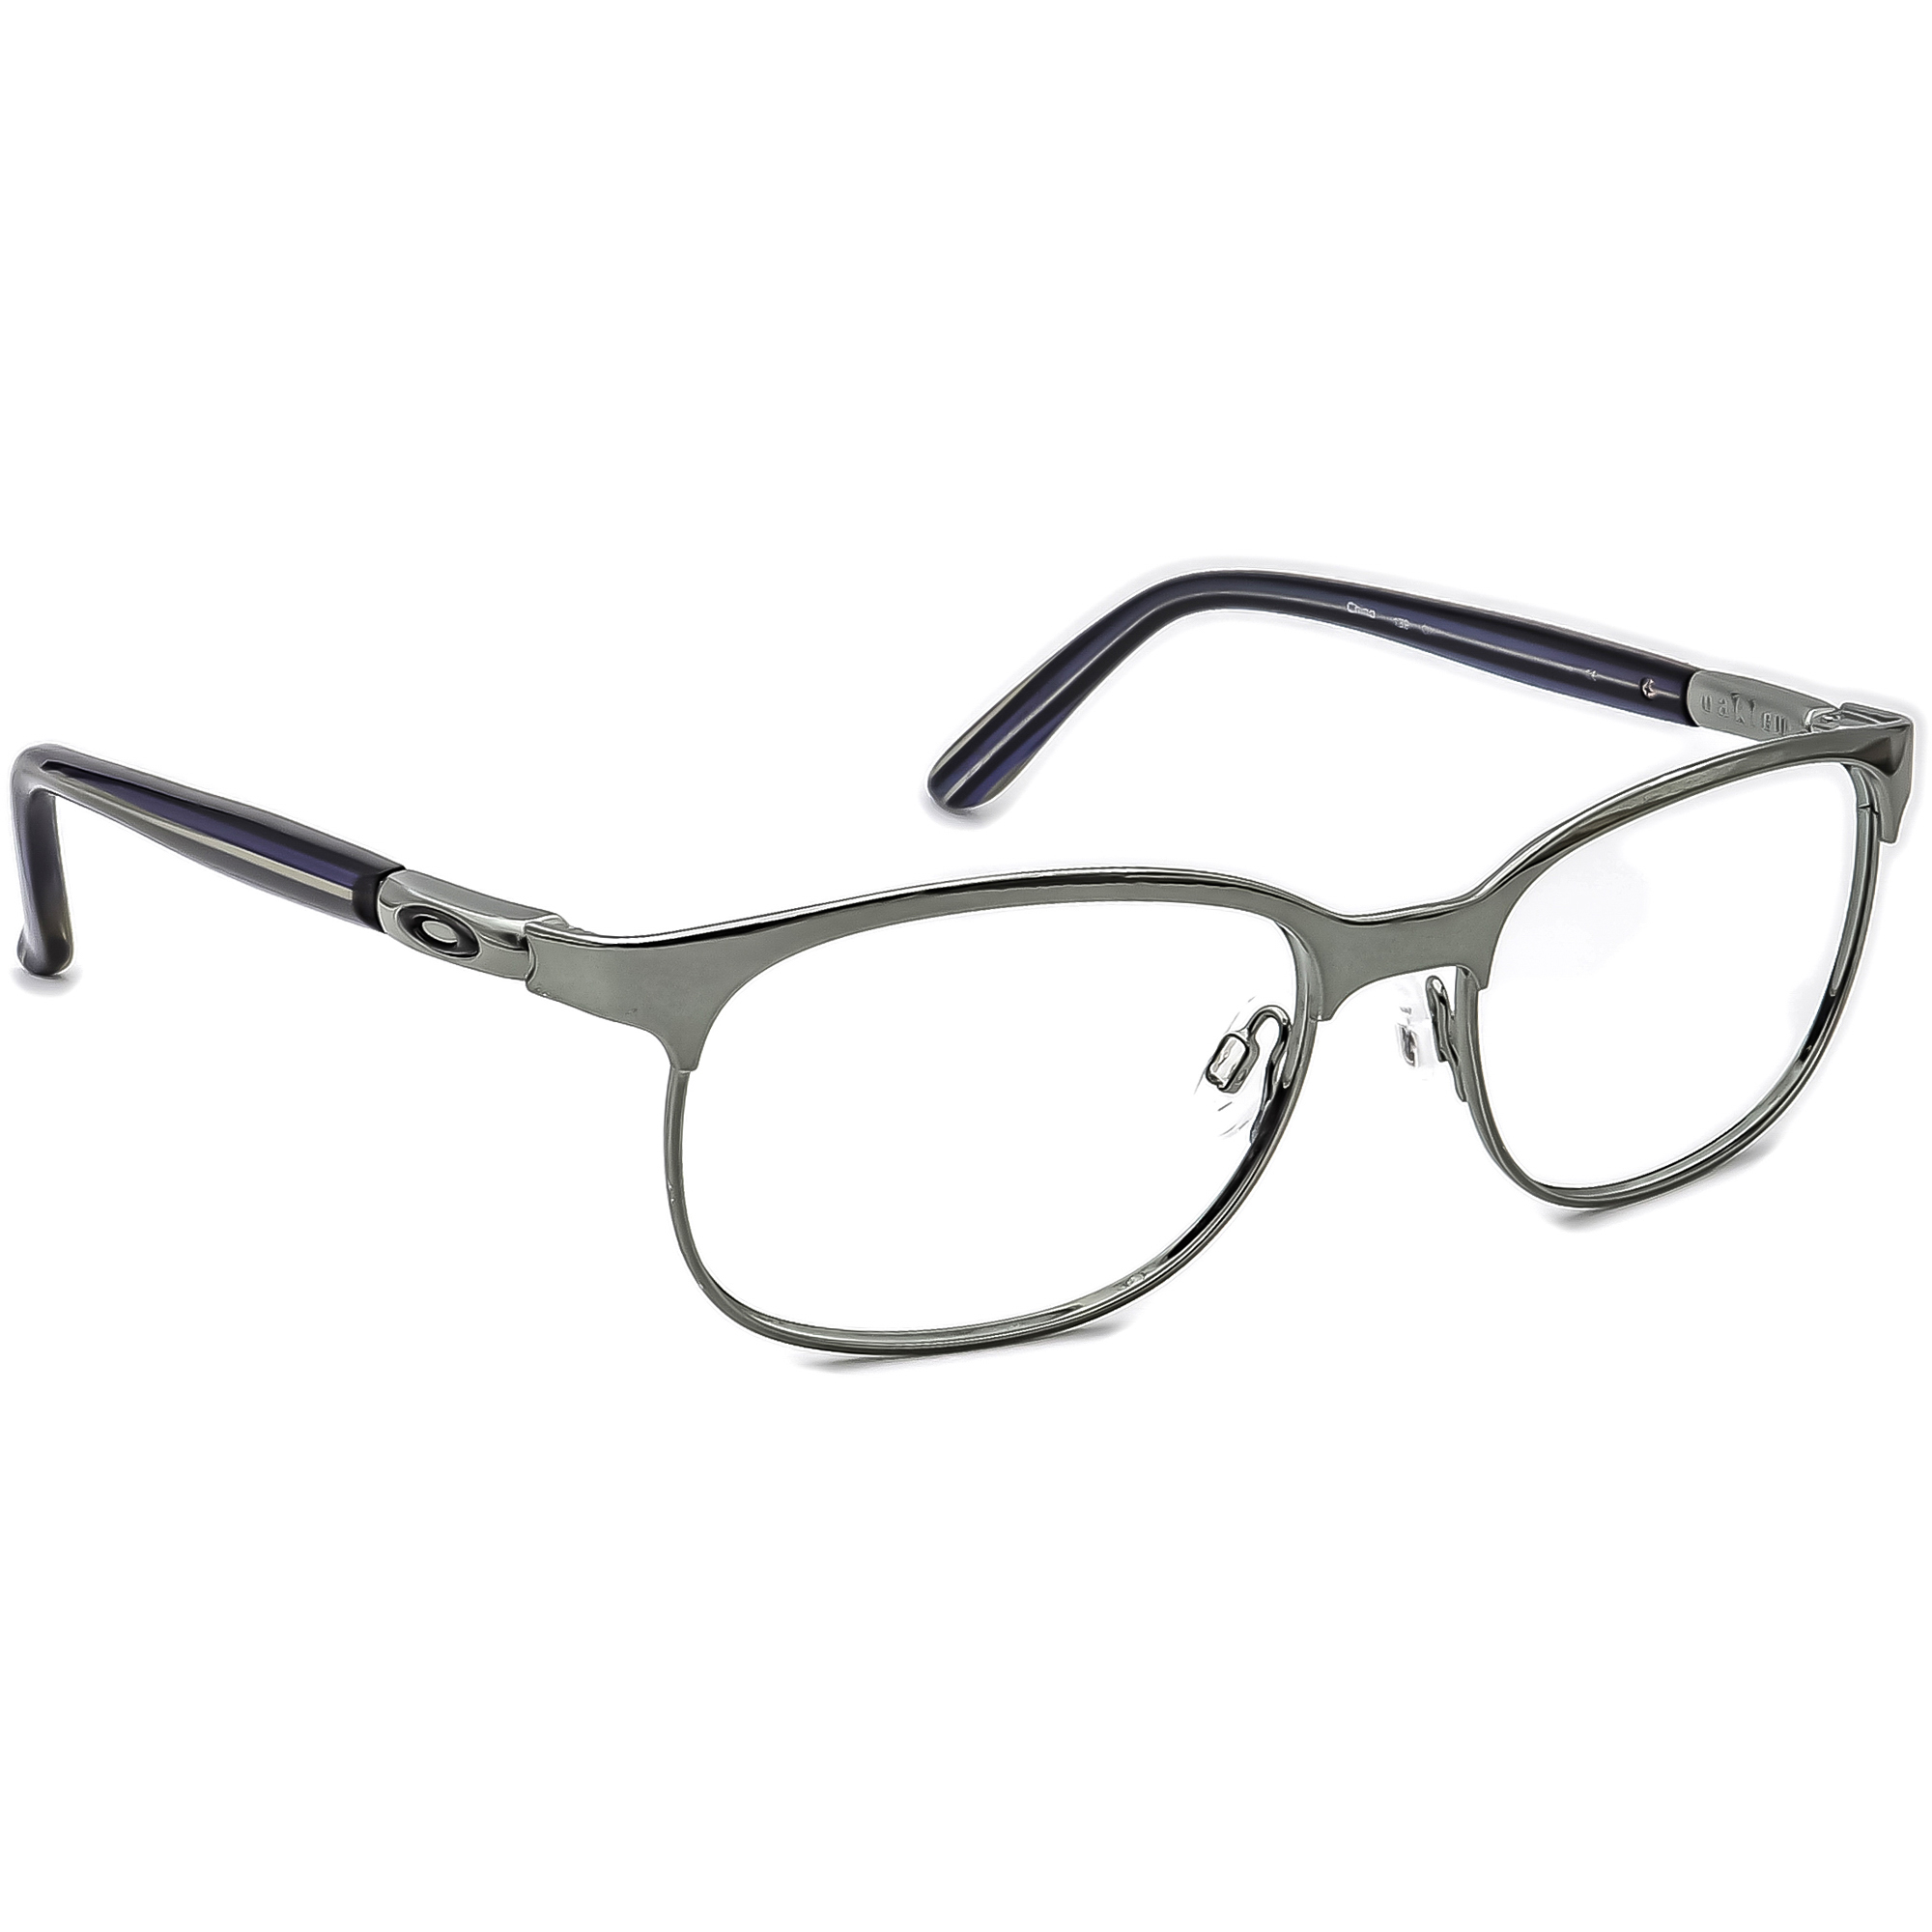 Oakley OX3124-0553 Descender Eyeglasses